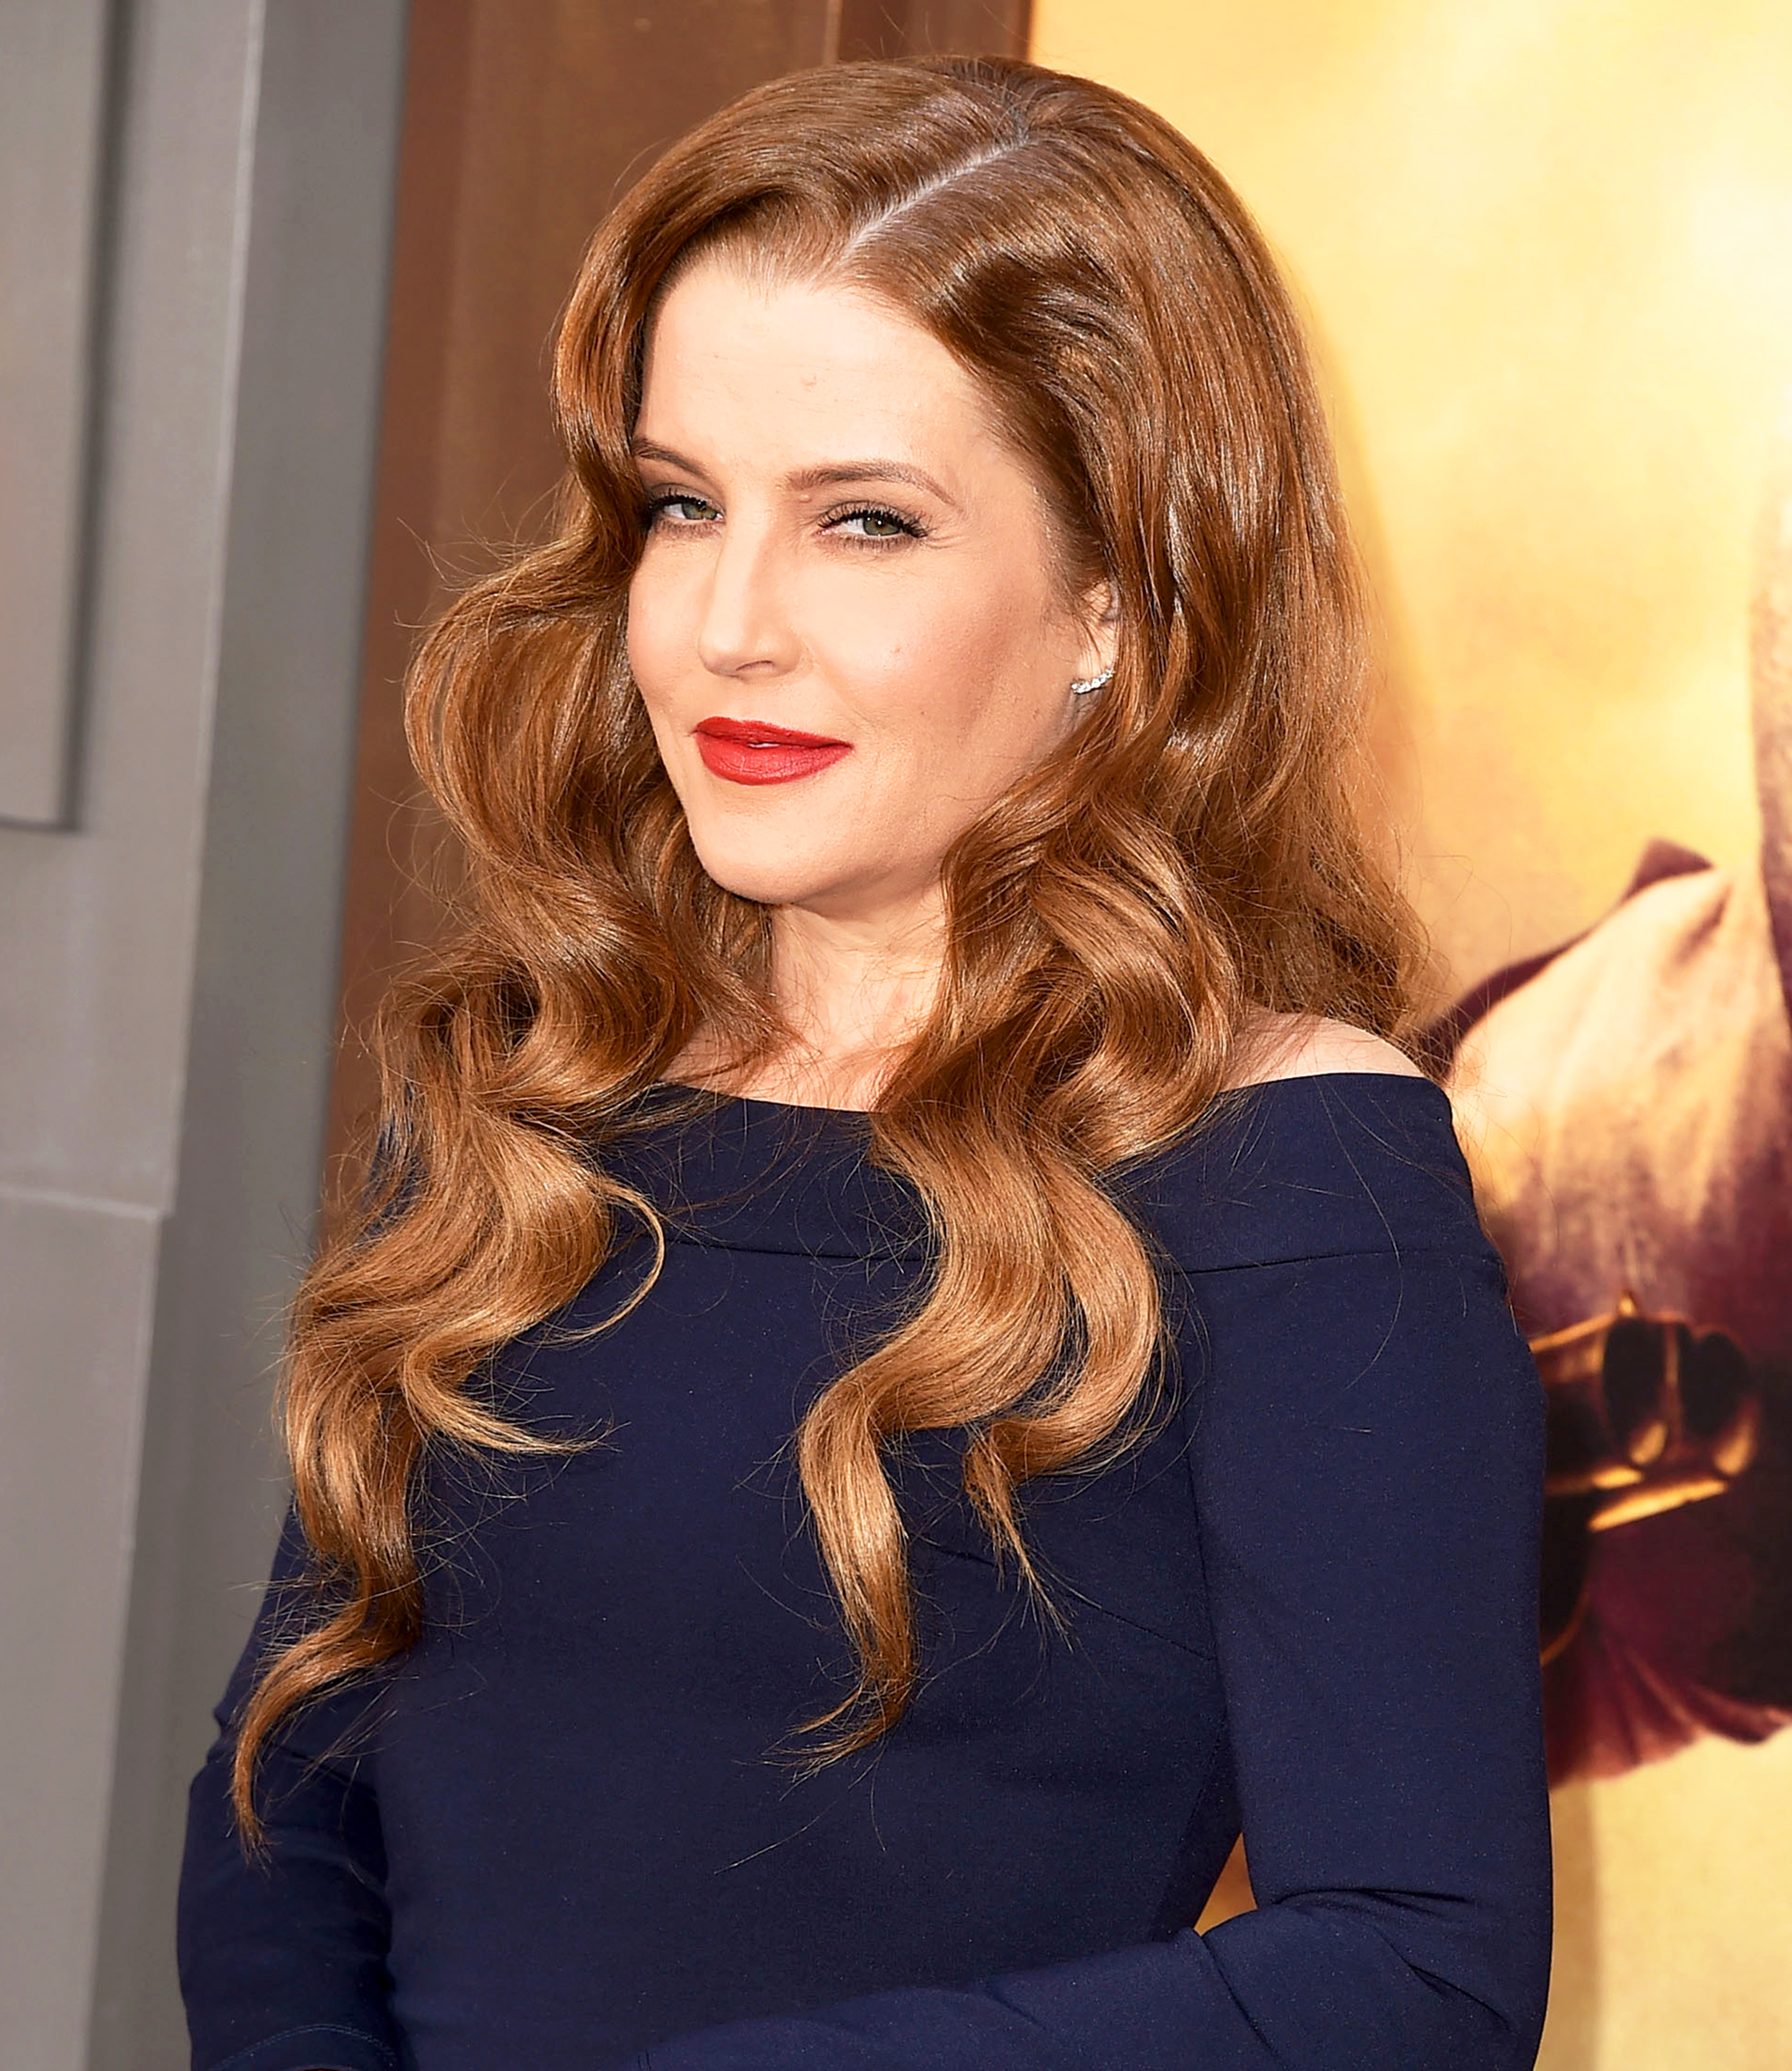 Singer Lisa Marie Presley Sues Former Manager, Reveals He Blew $100 Million